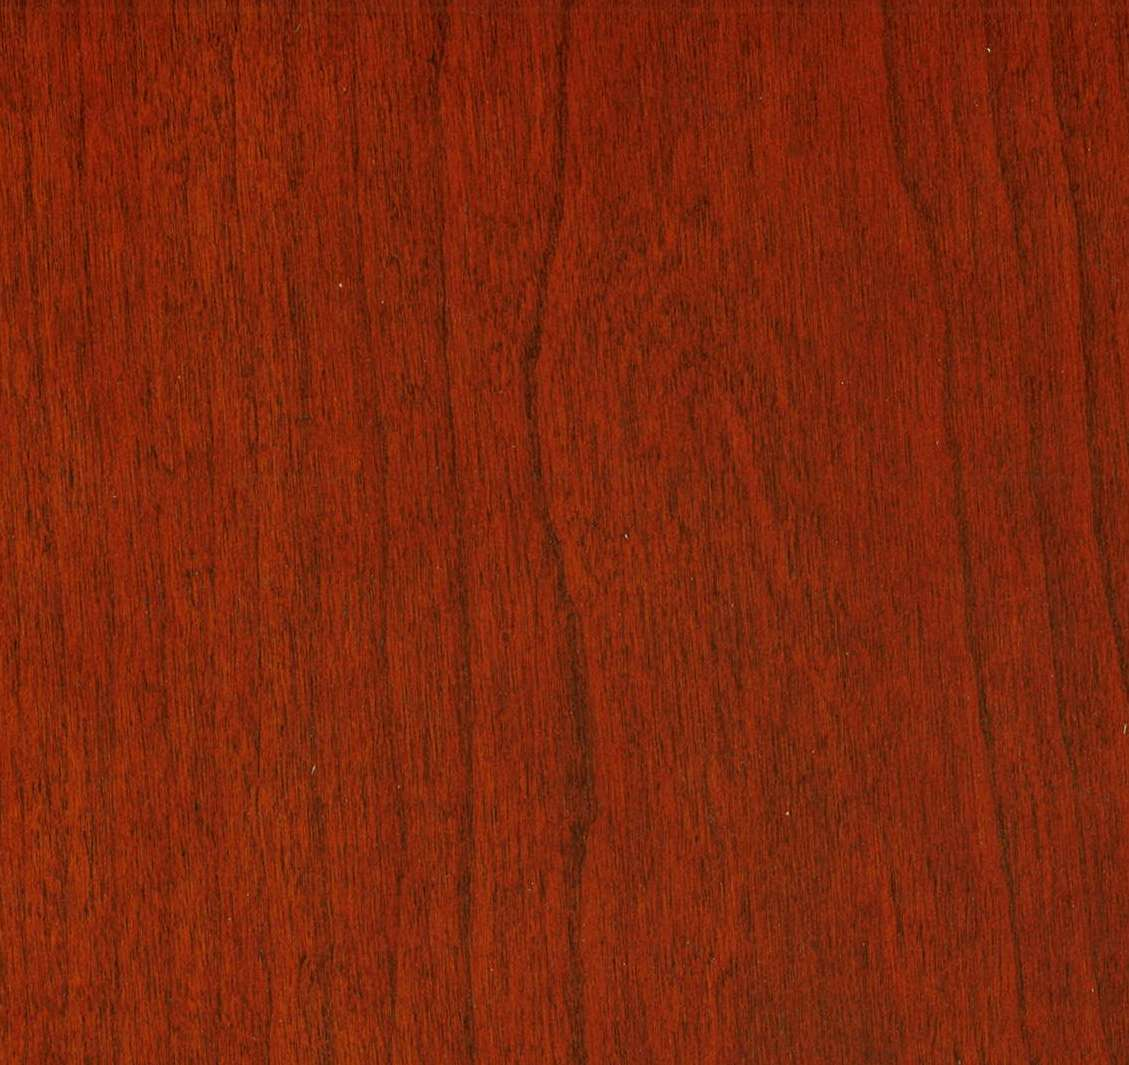 Solid Core Cherry Wood Door Cherry Commercial Interior Door